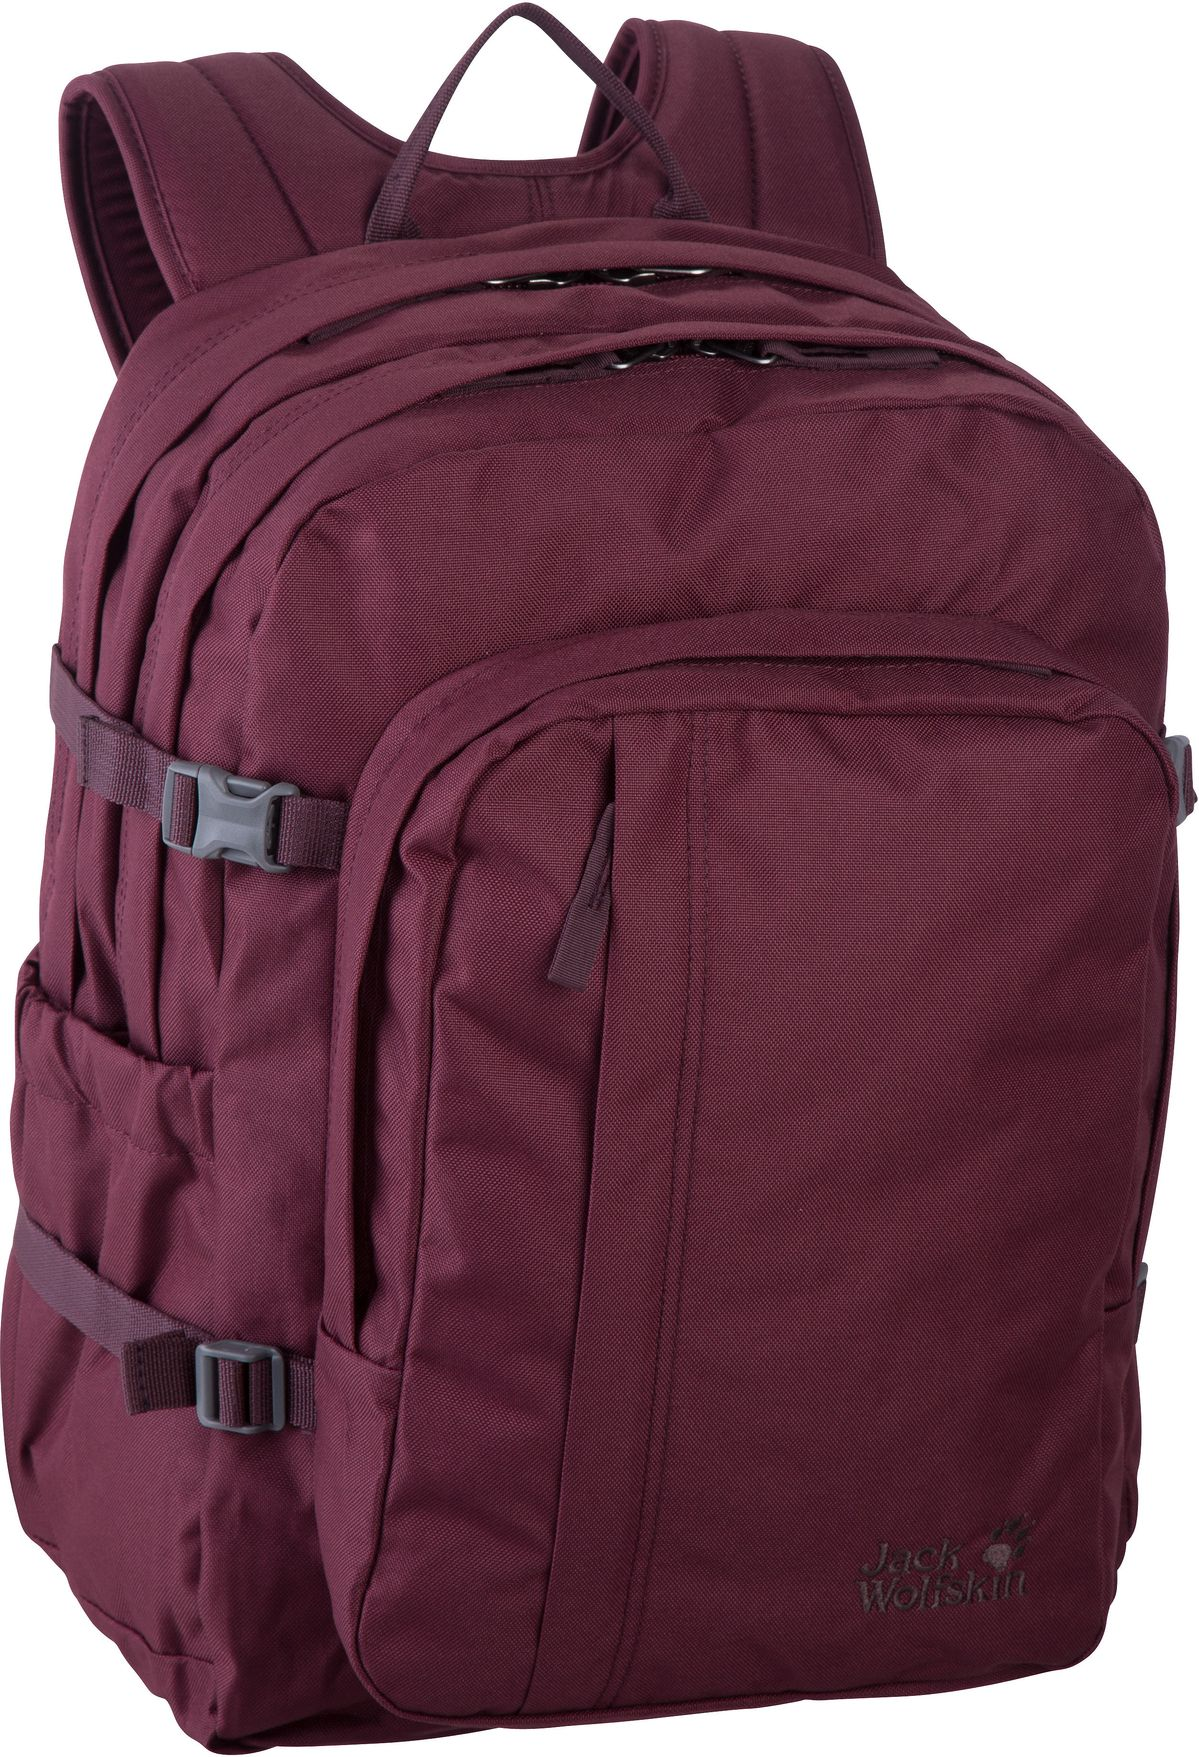 Rucksack / Daypack Berkeley NEW Port Wine (30 Liter)